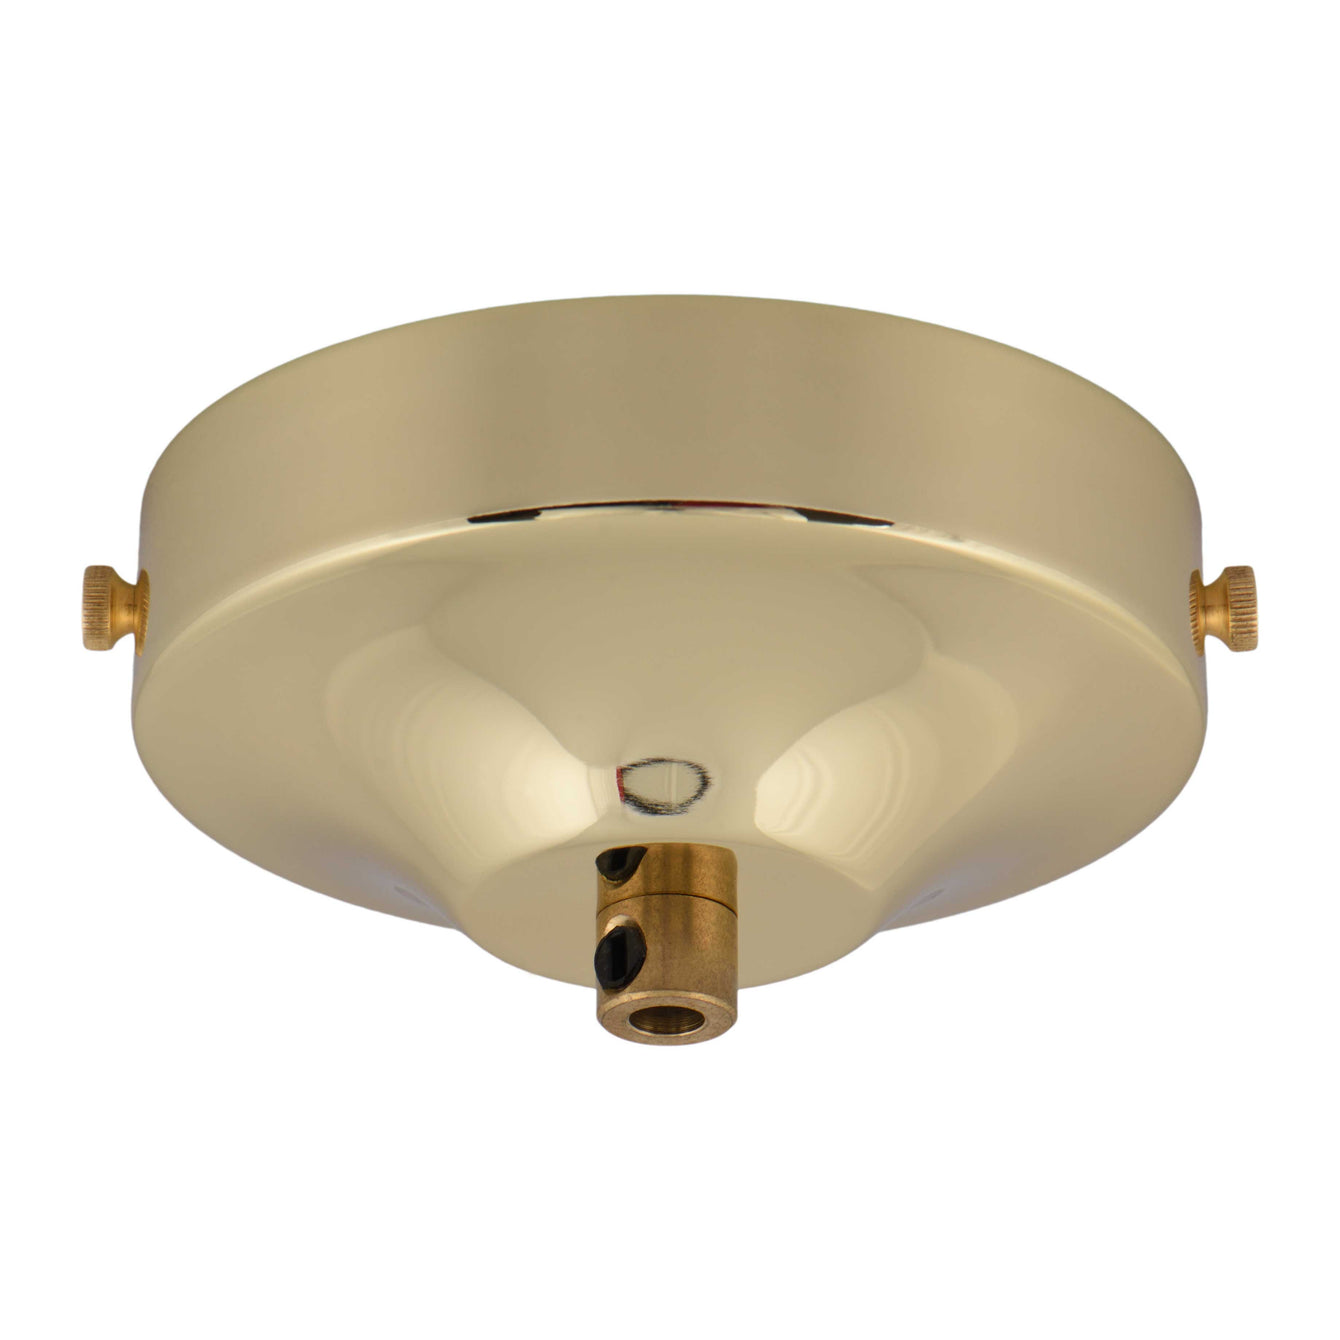 ElekTek 100mm Diameter Convex Ceiling Rose with Strap Bracket and Cord Grip Metallic Finishes Powder Coated Colours - Buy It Better Antique Brass